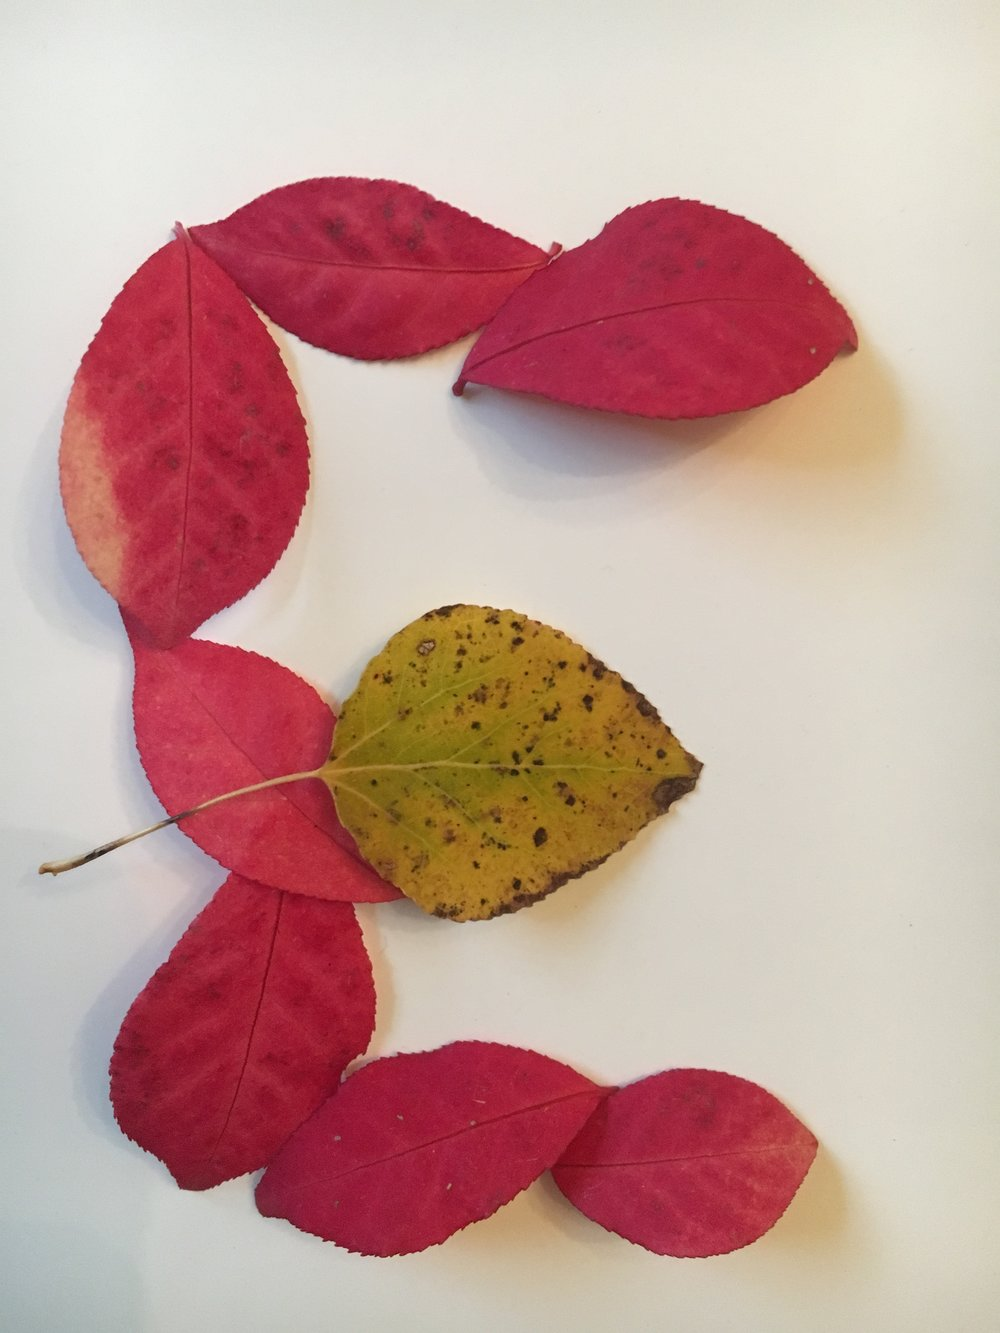 First, we arranged the leaves in the shape of an E. Then, we made a photo model for Sara's collage work.